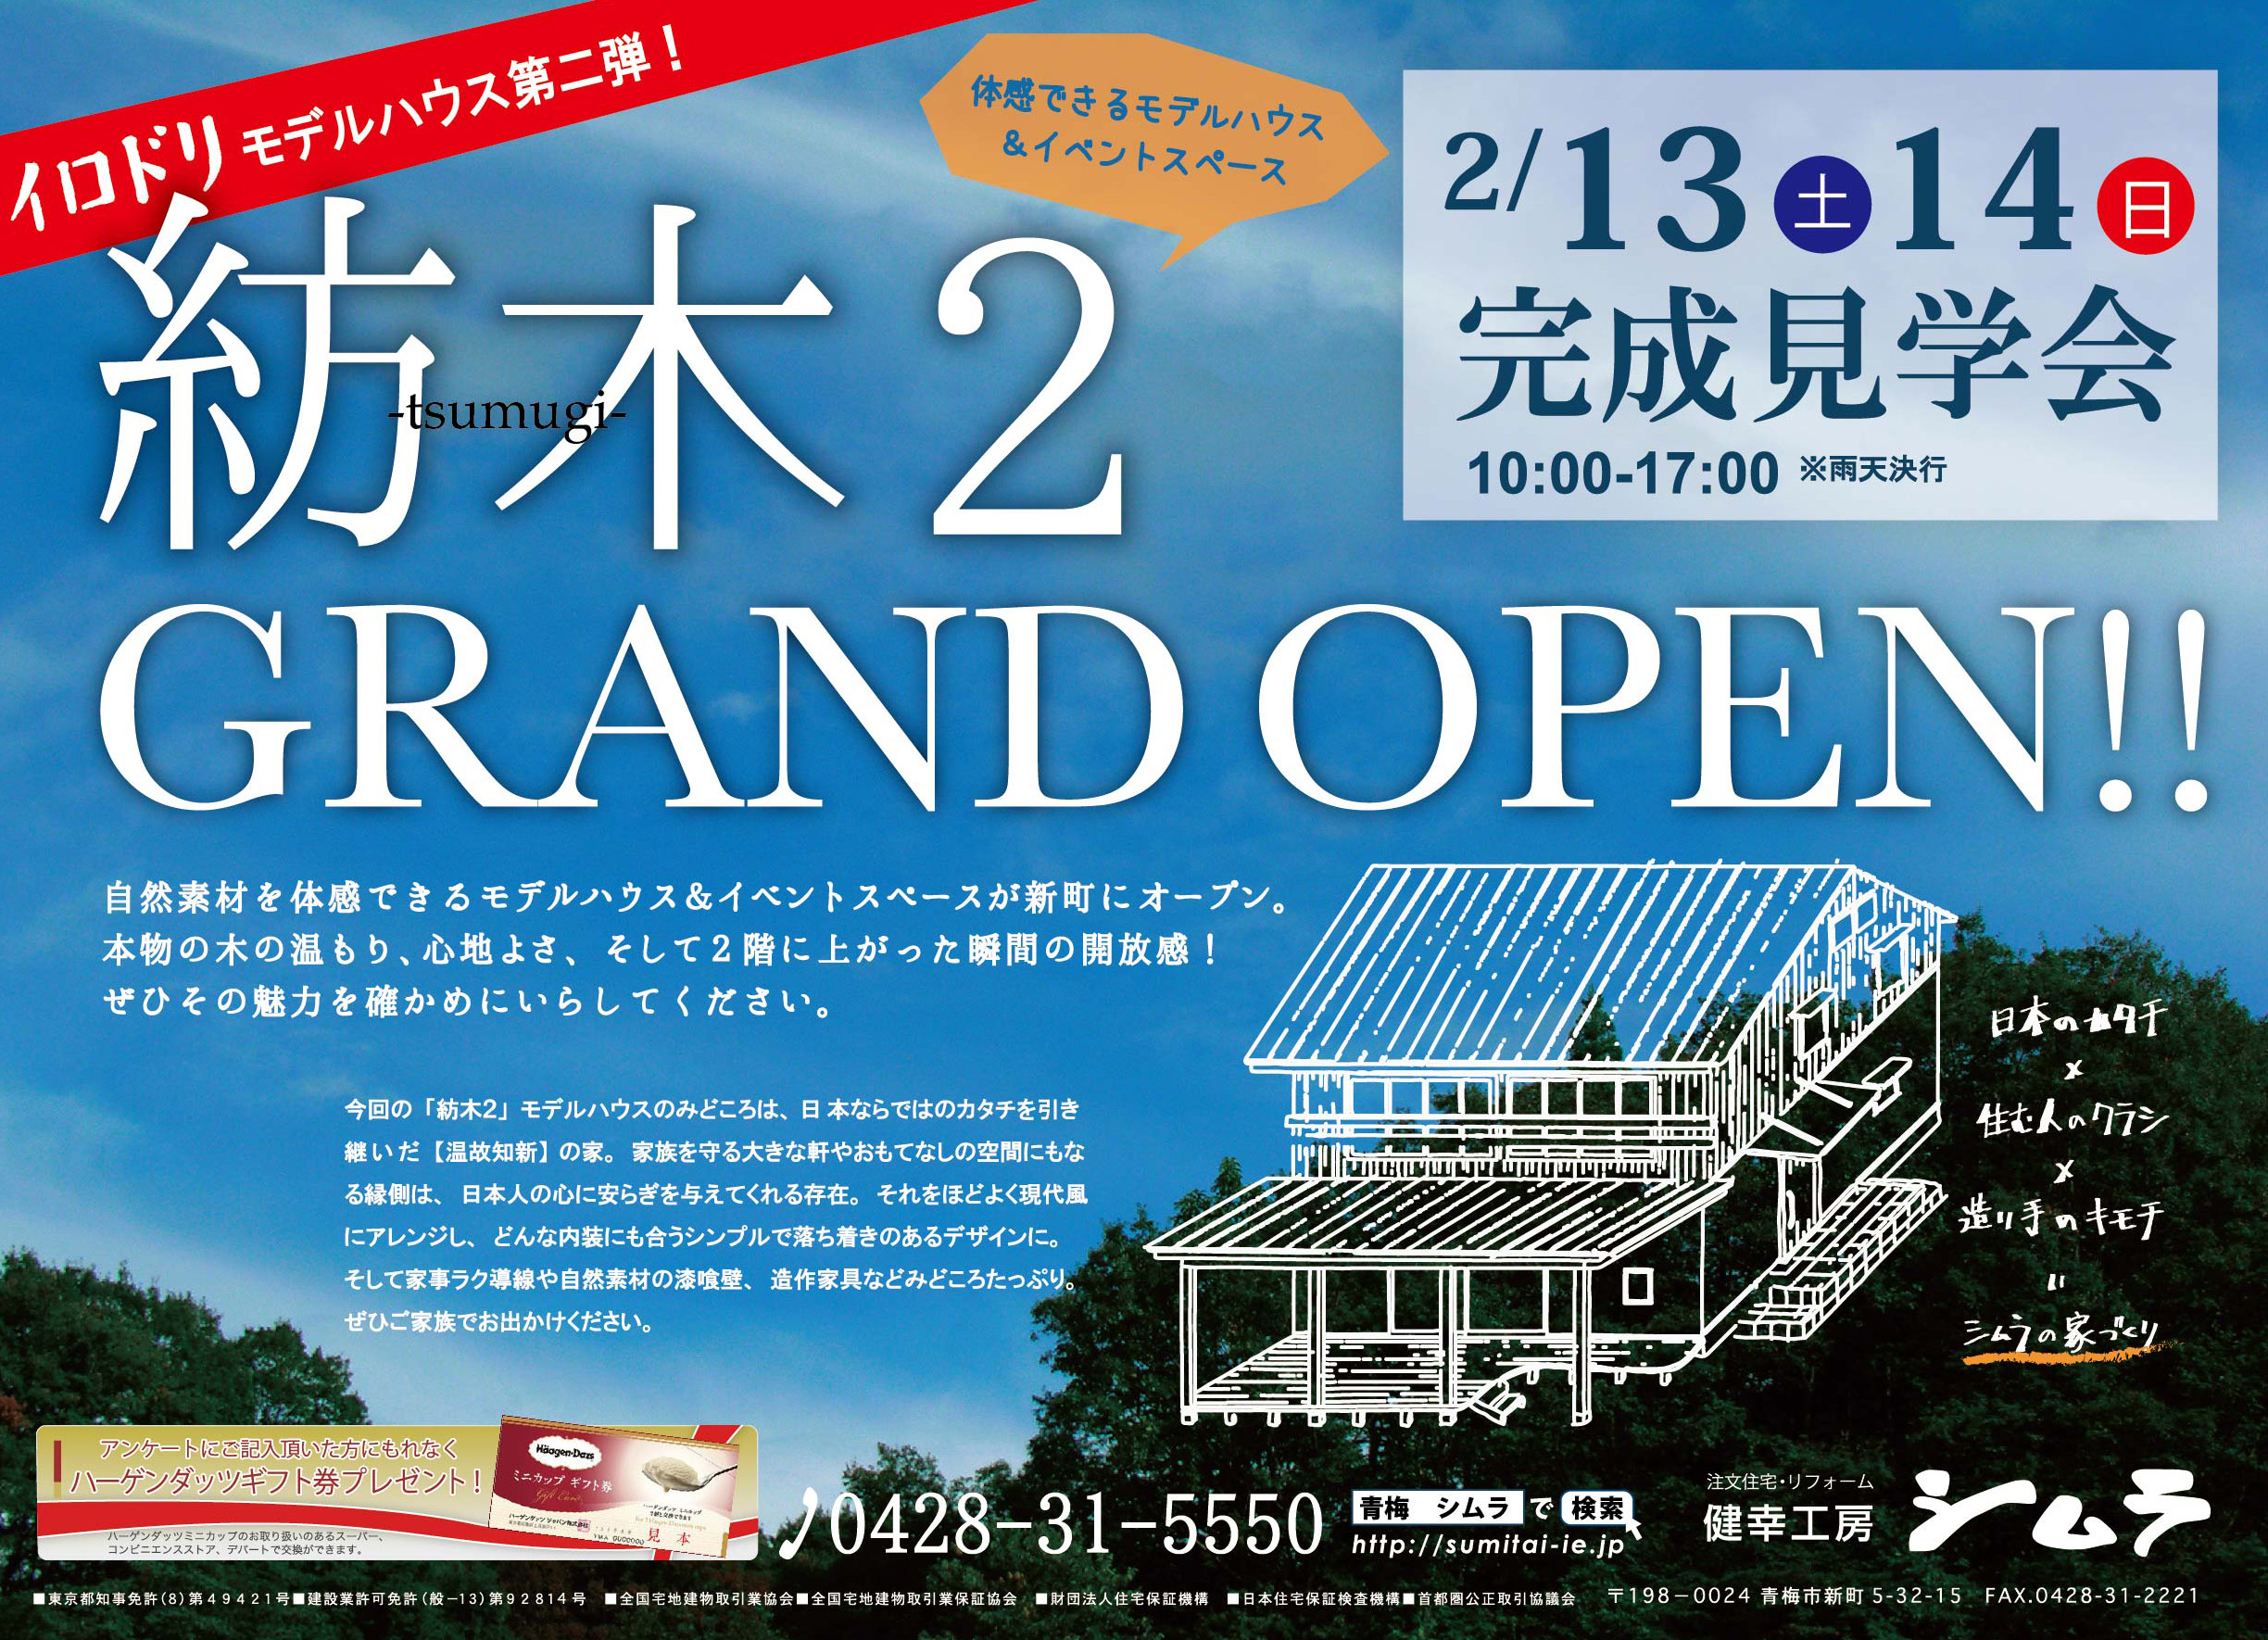 021314-grand-out